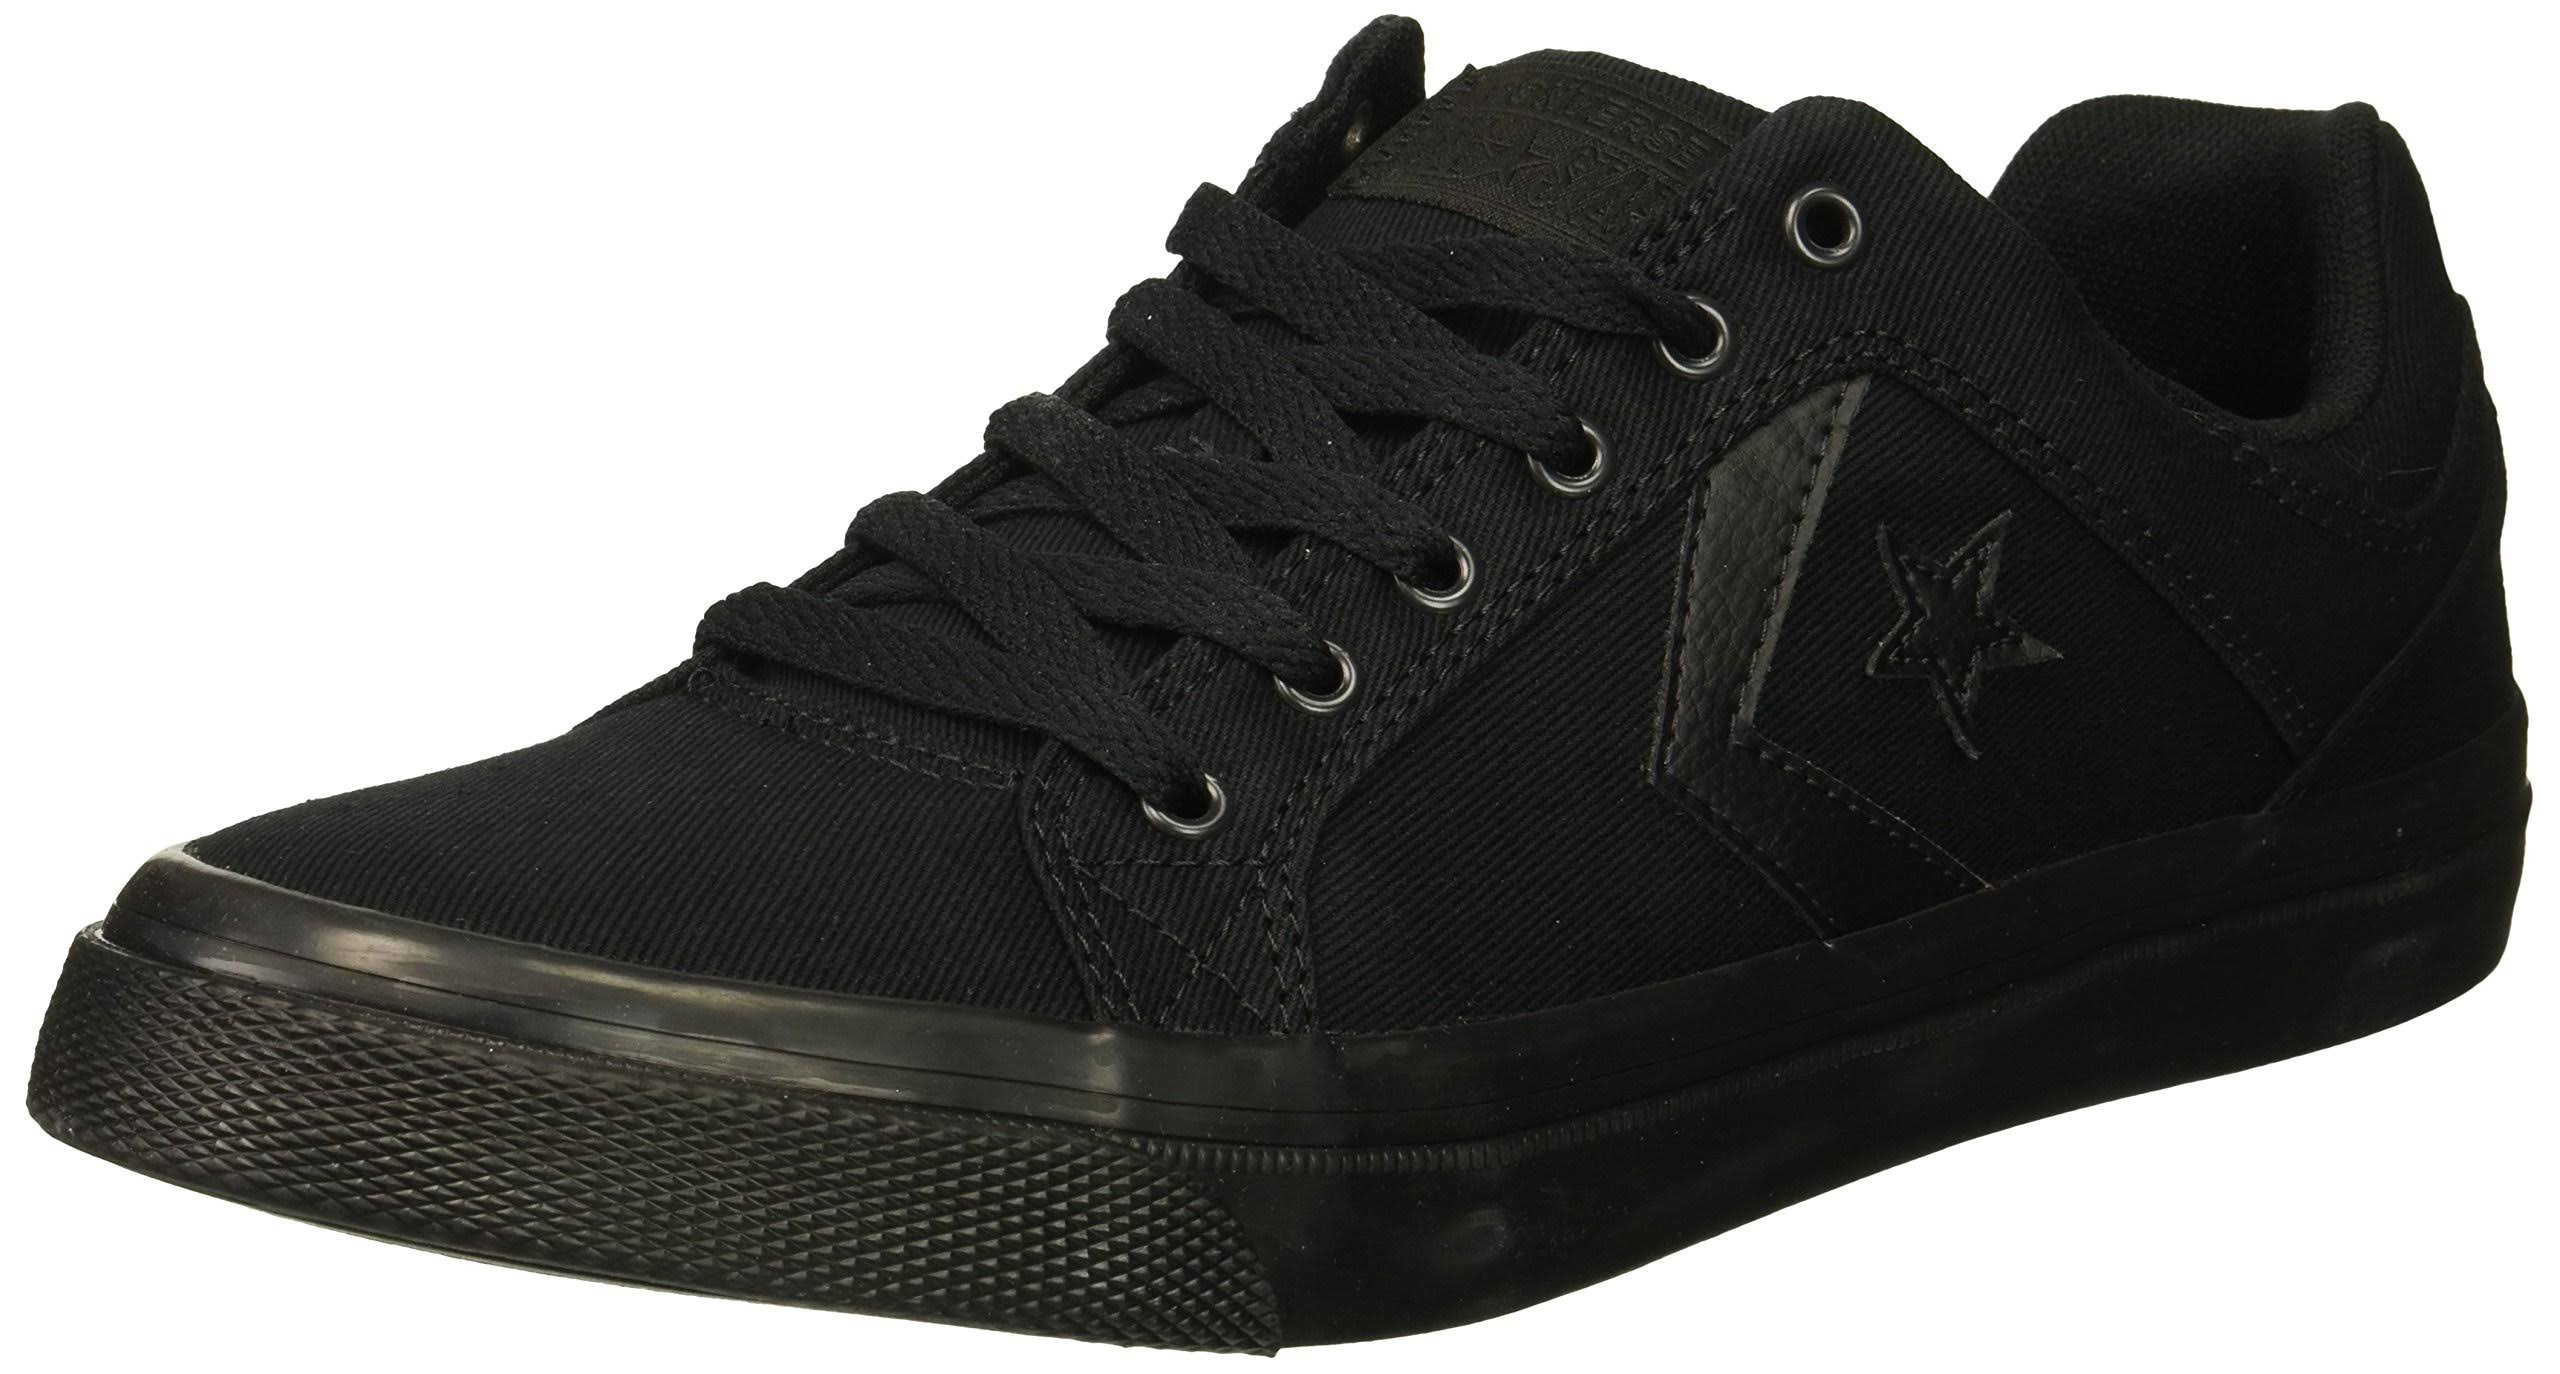 black Distrito Canvas Cons Shoes El Black Converse Mens Sneakers BUpq44